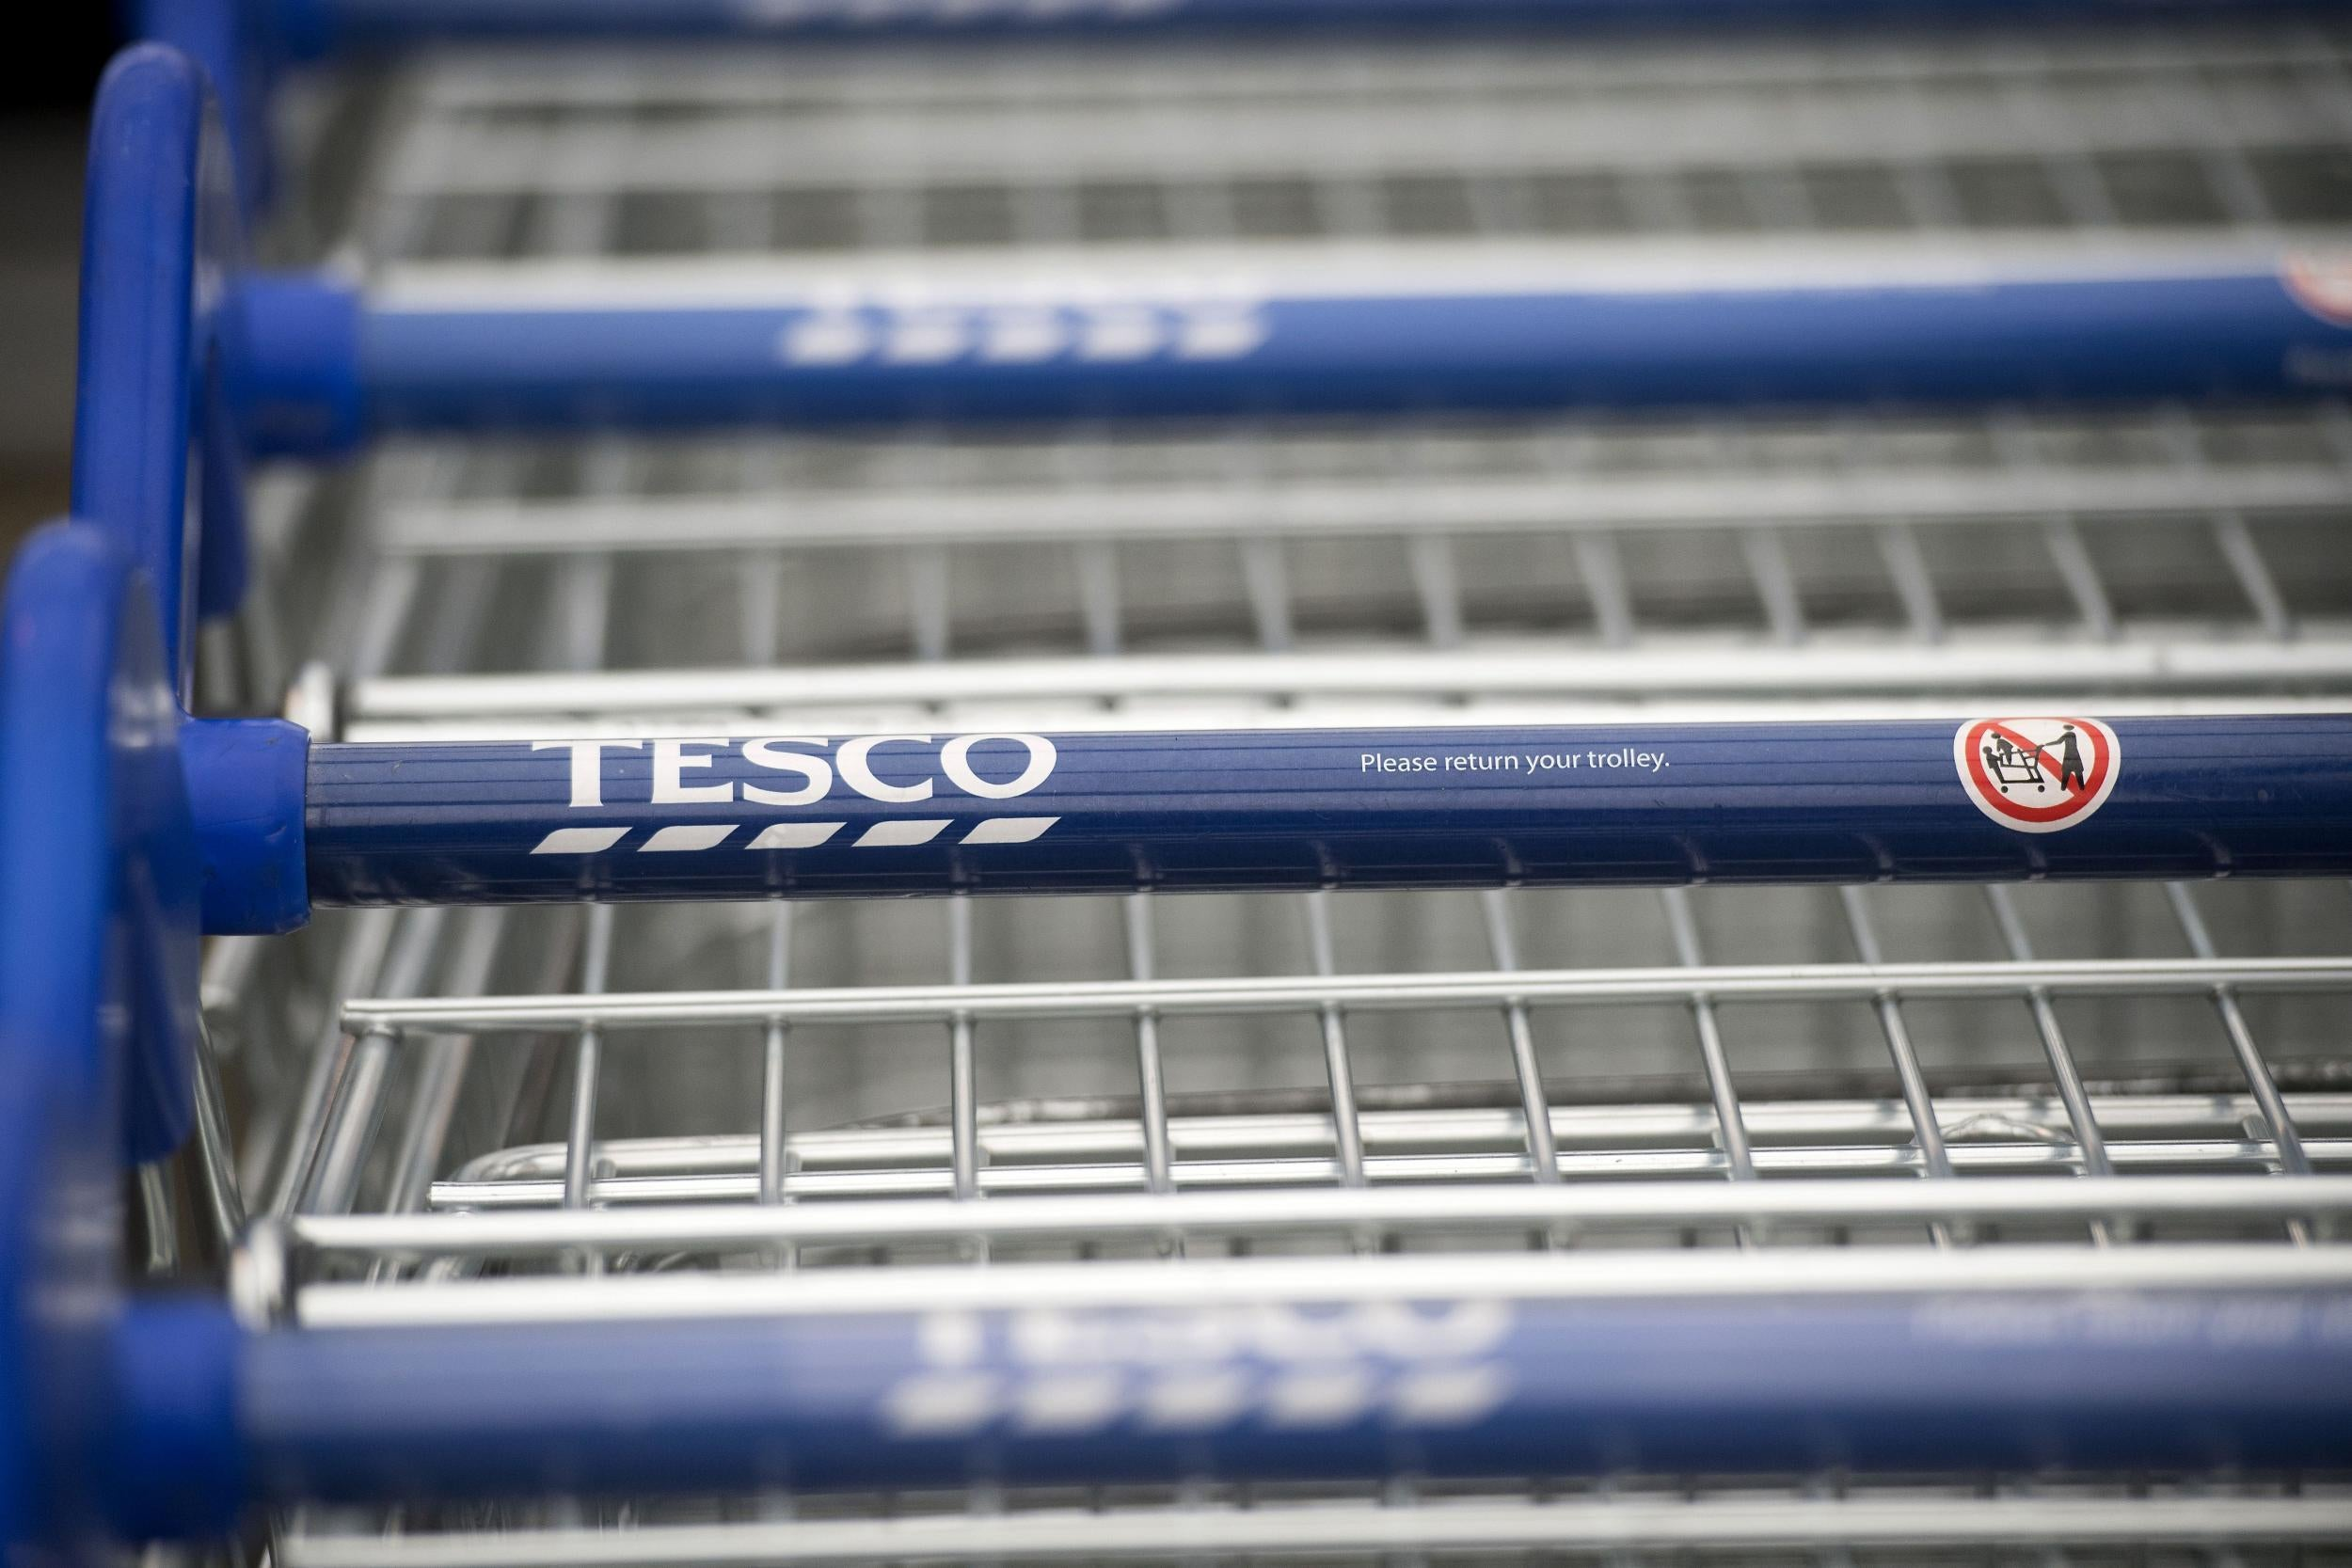 Tesco's 'sexist' shopping trolleys are making people furious